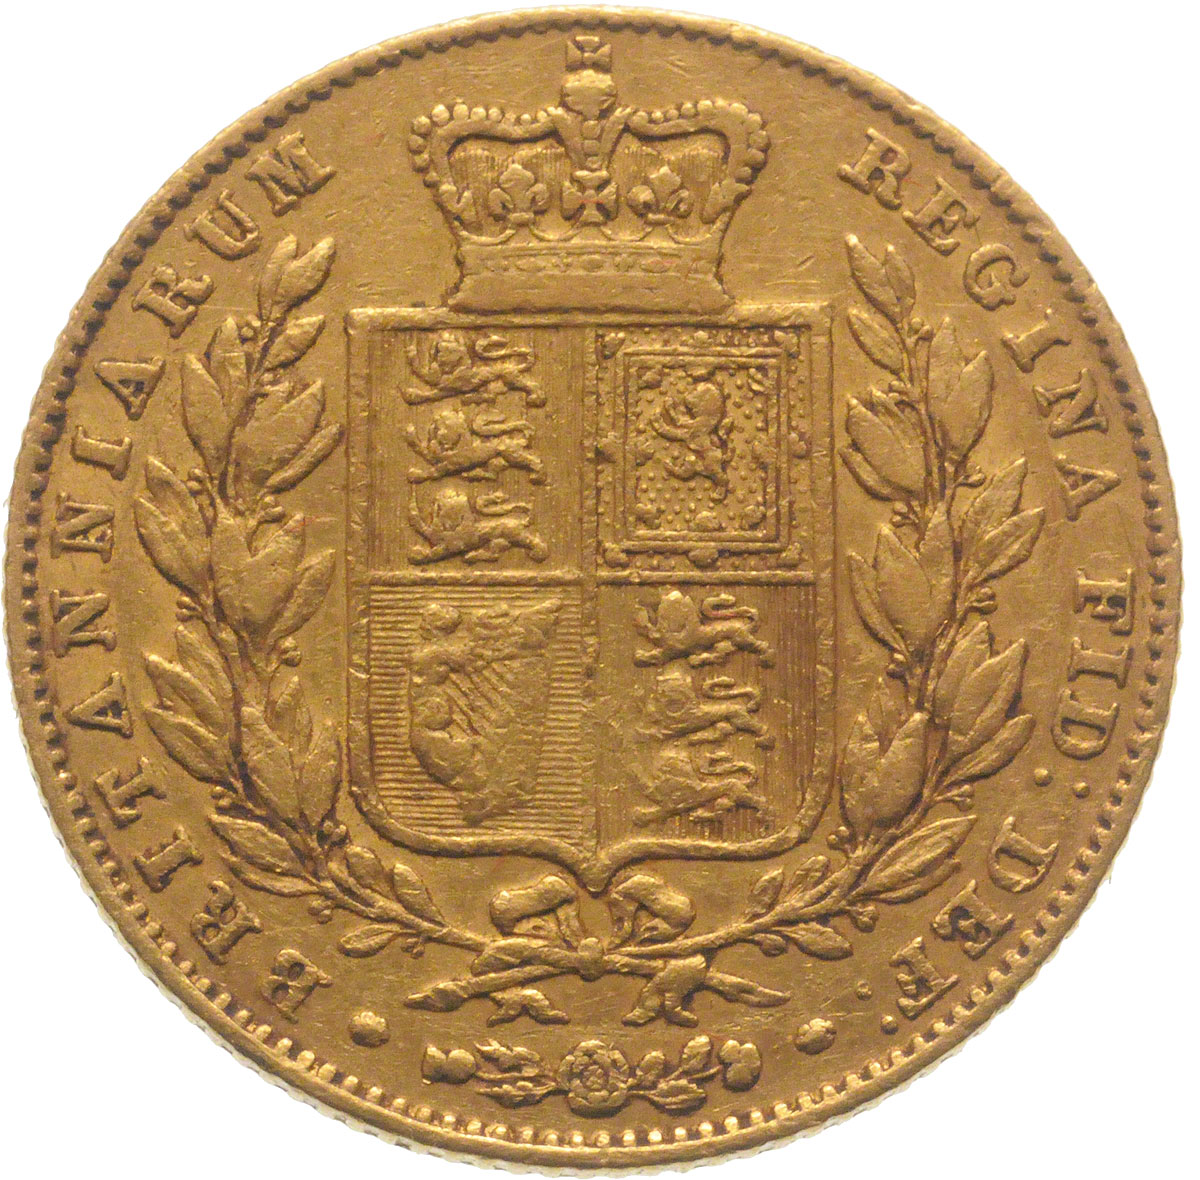 Reverse Face of a 1843-Gold-Sovereign-Victoria-Young-Head-Shield